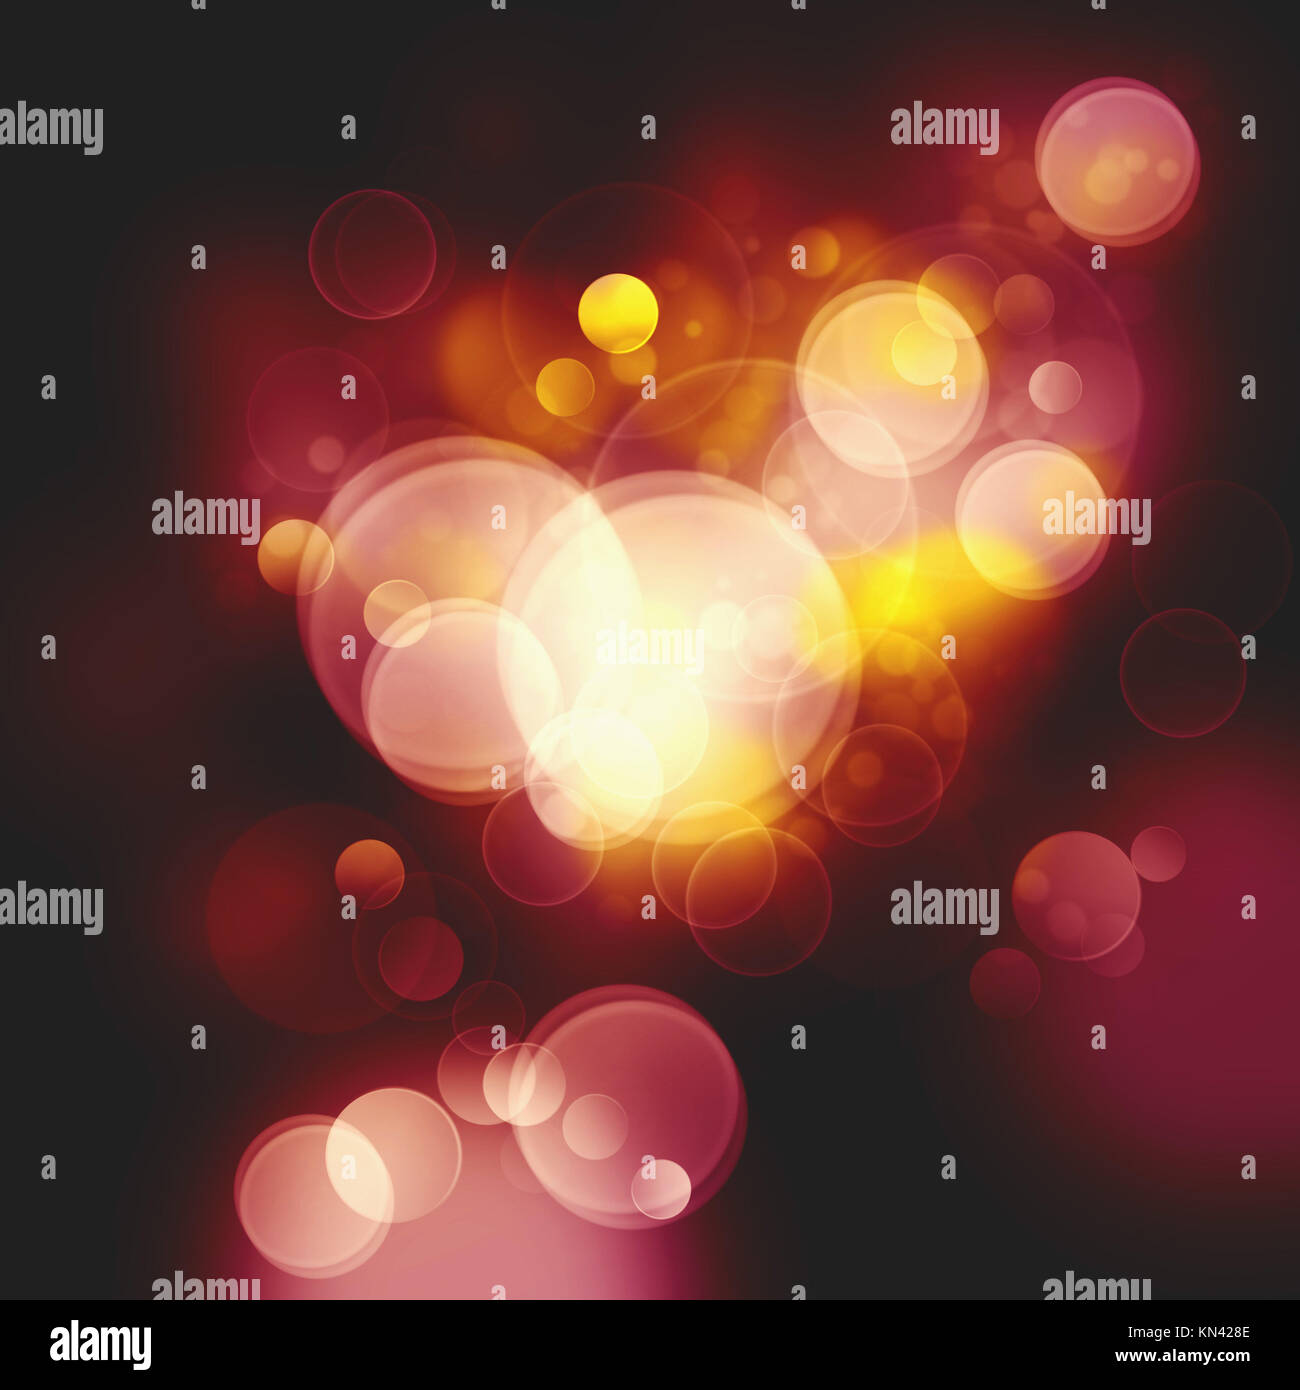 Abstract Festive Christmas background with beauty bokeh and defocused lights. Stock Photo